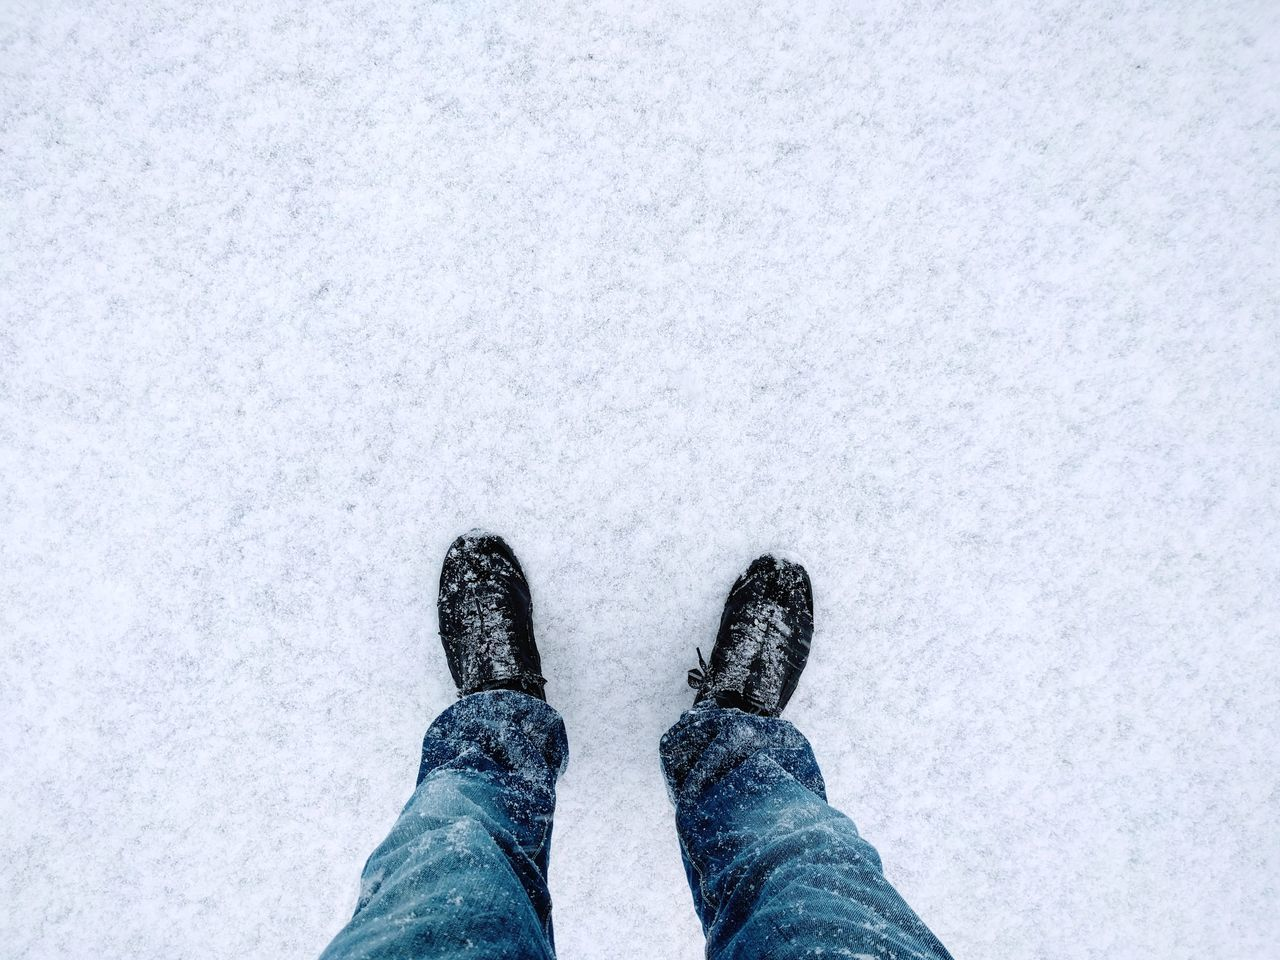 Low Section Personal Perspective Human Leg Human Body Part Shoe Standing One Person Lifestyles Close-up Adults Only Winter Day People Outdoors One Man Only Adult Only Men Snow First Snow White Color Winter Winter Wonderland Wintertime Jeans Copy Space